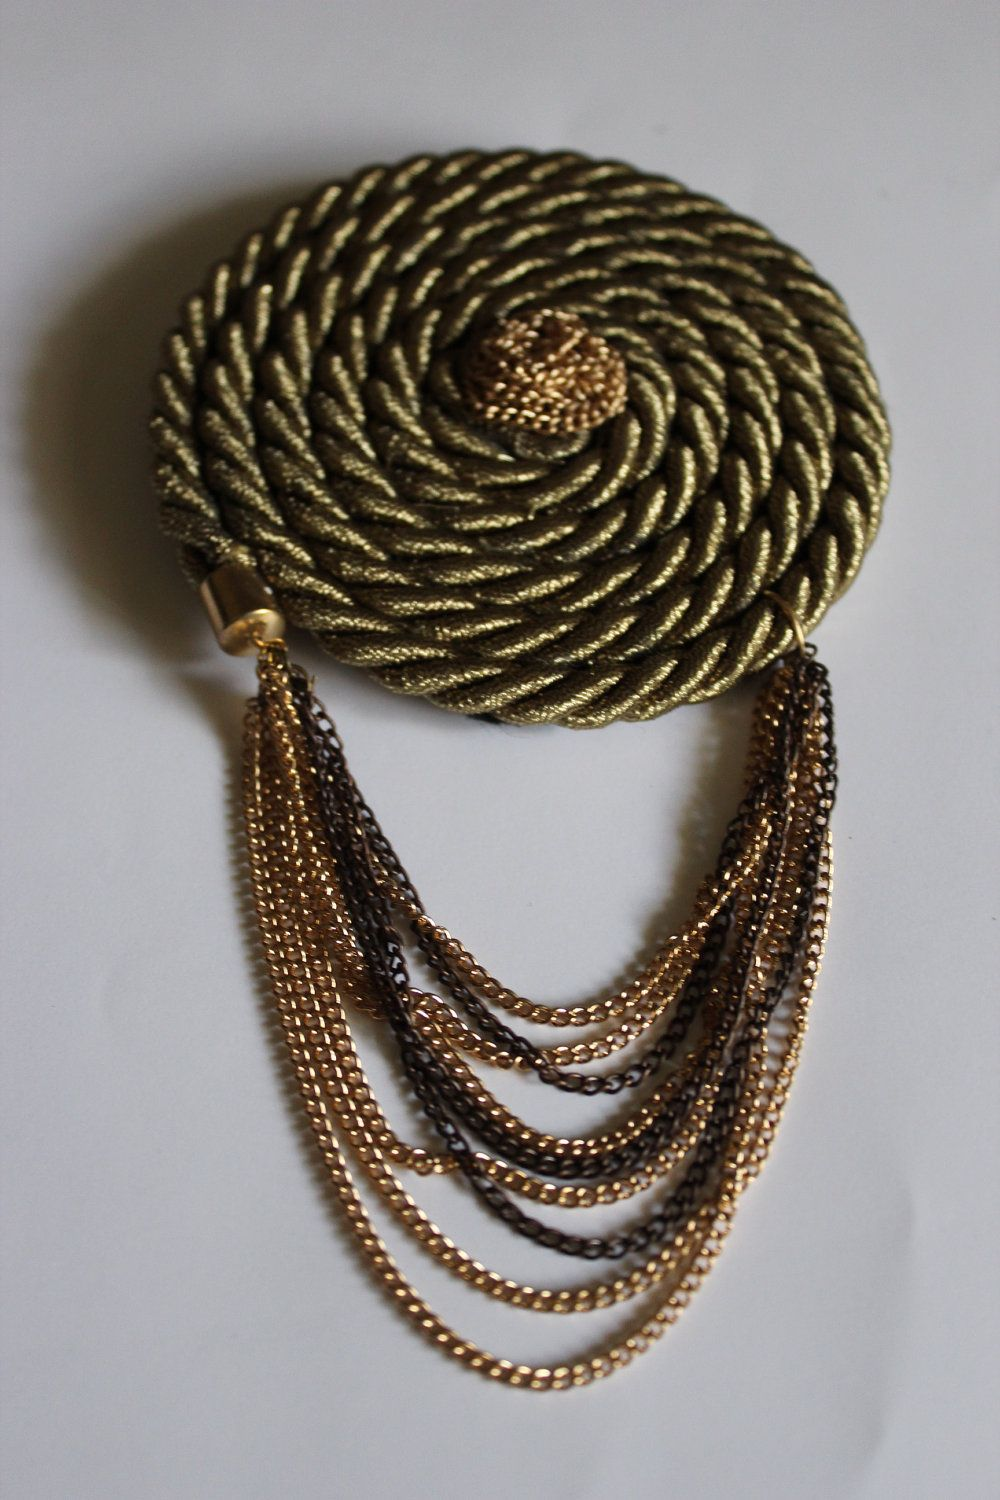 Items similar to Gold Rope and Chain Epaulette and pin or brooch on Etsy